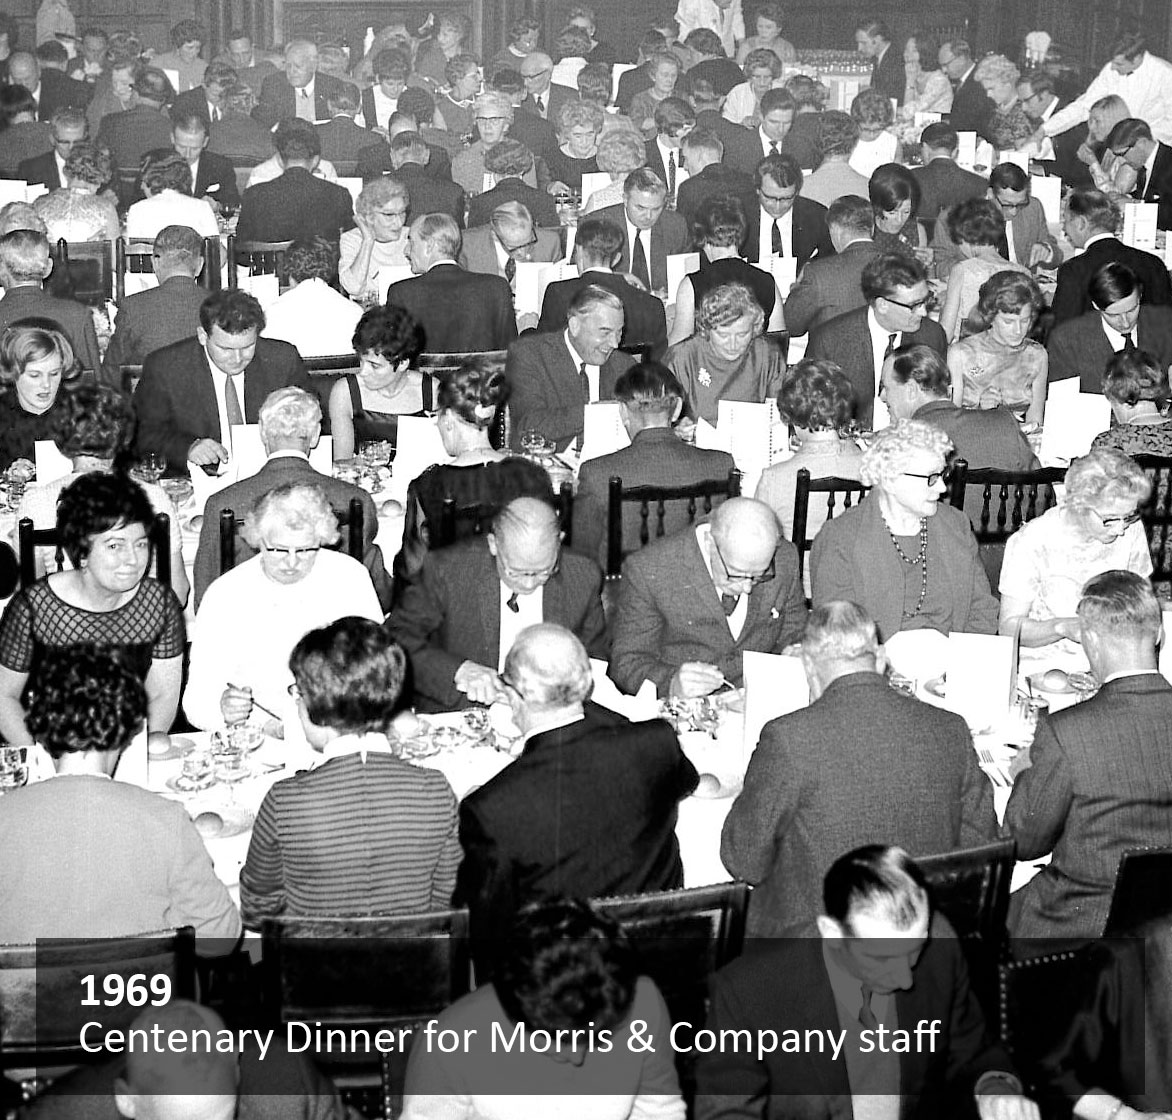 Centenary Dinner for Morris & Company staff